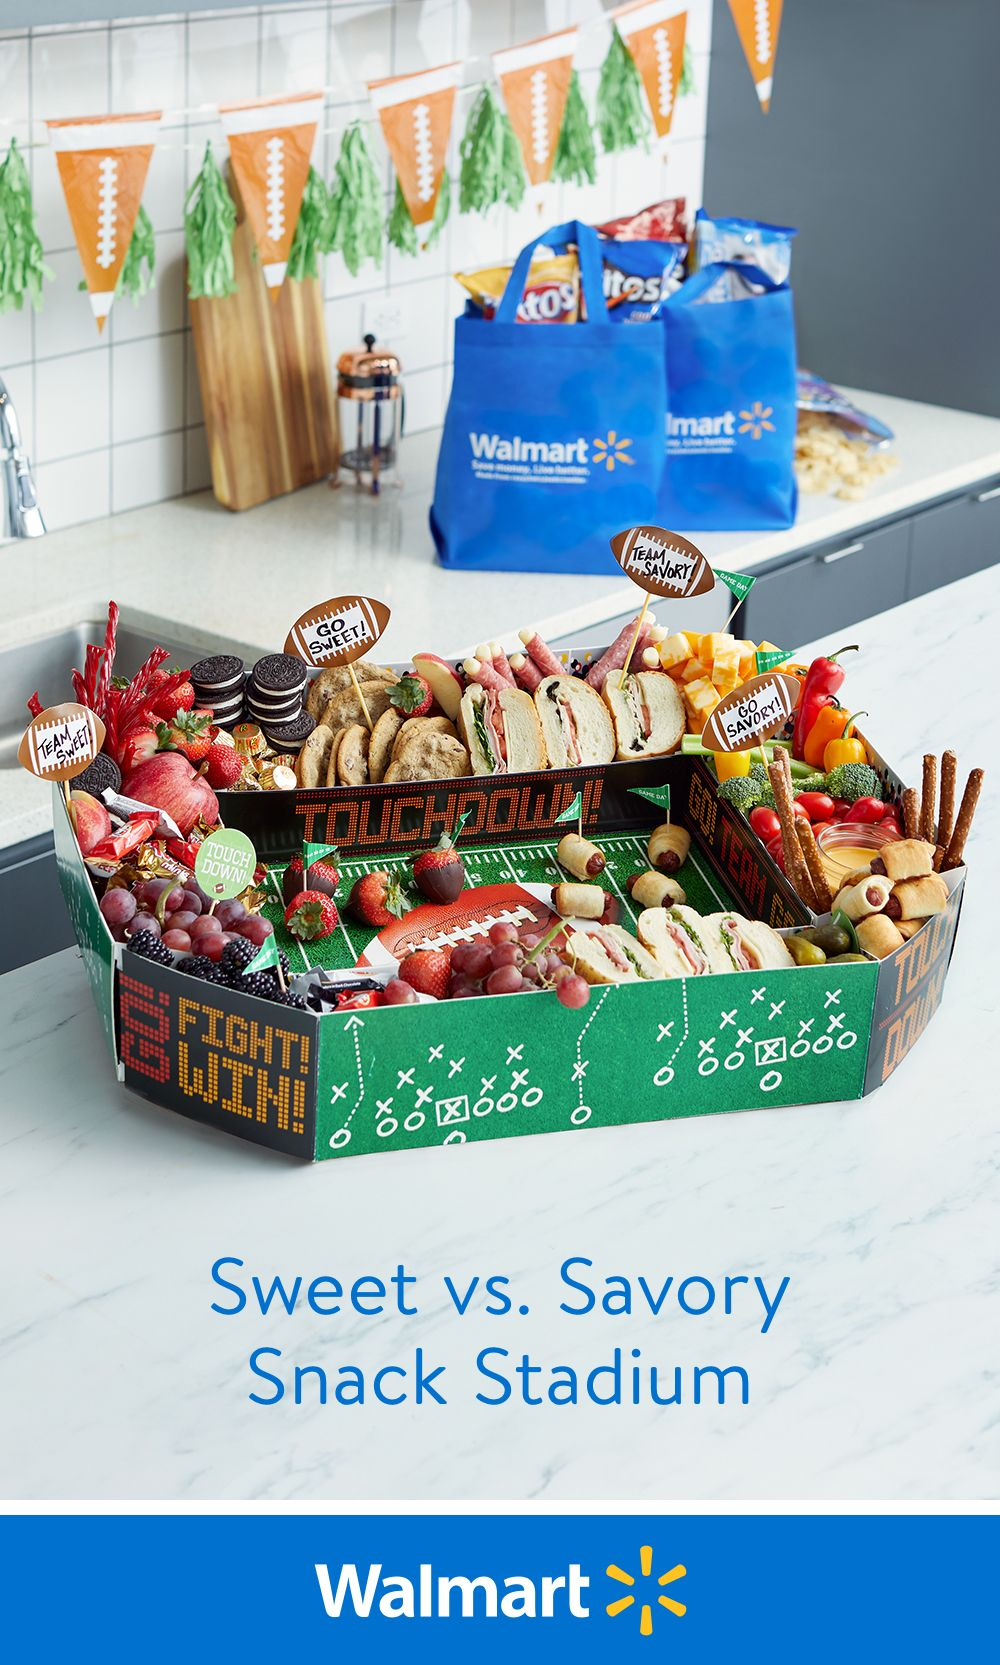 No matter who you are rooting for, win bragging rights at your game day party with this snack stadium that's full of the ultimate Big Game party food!